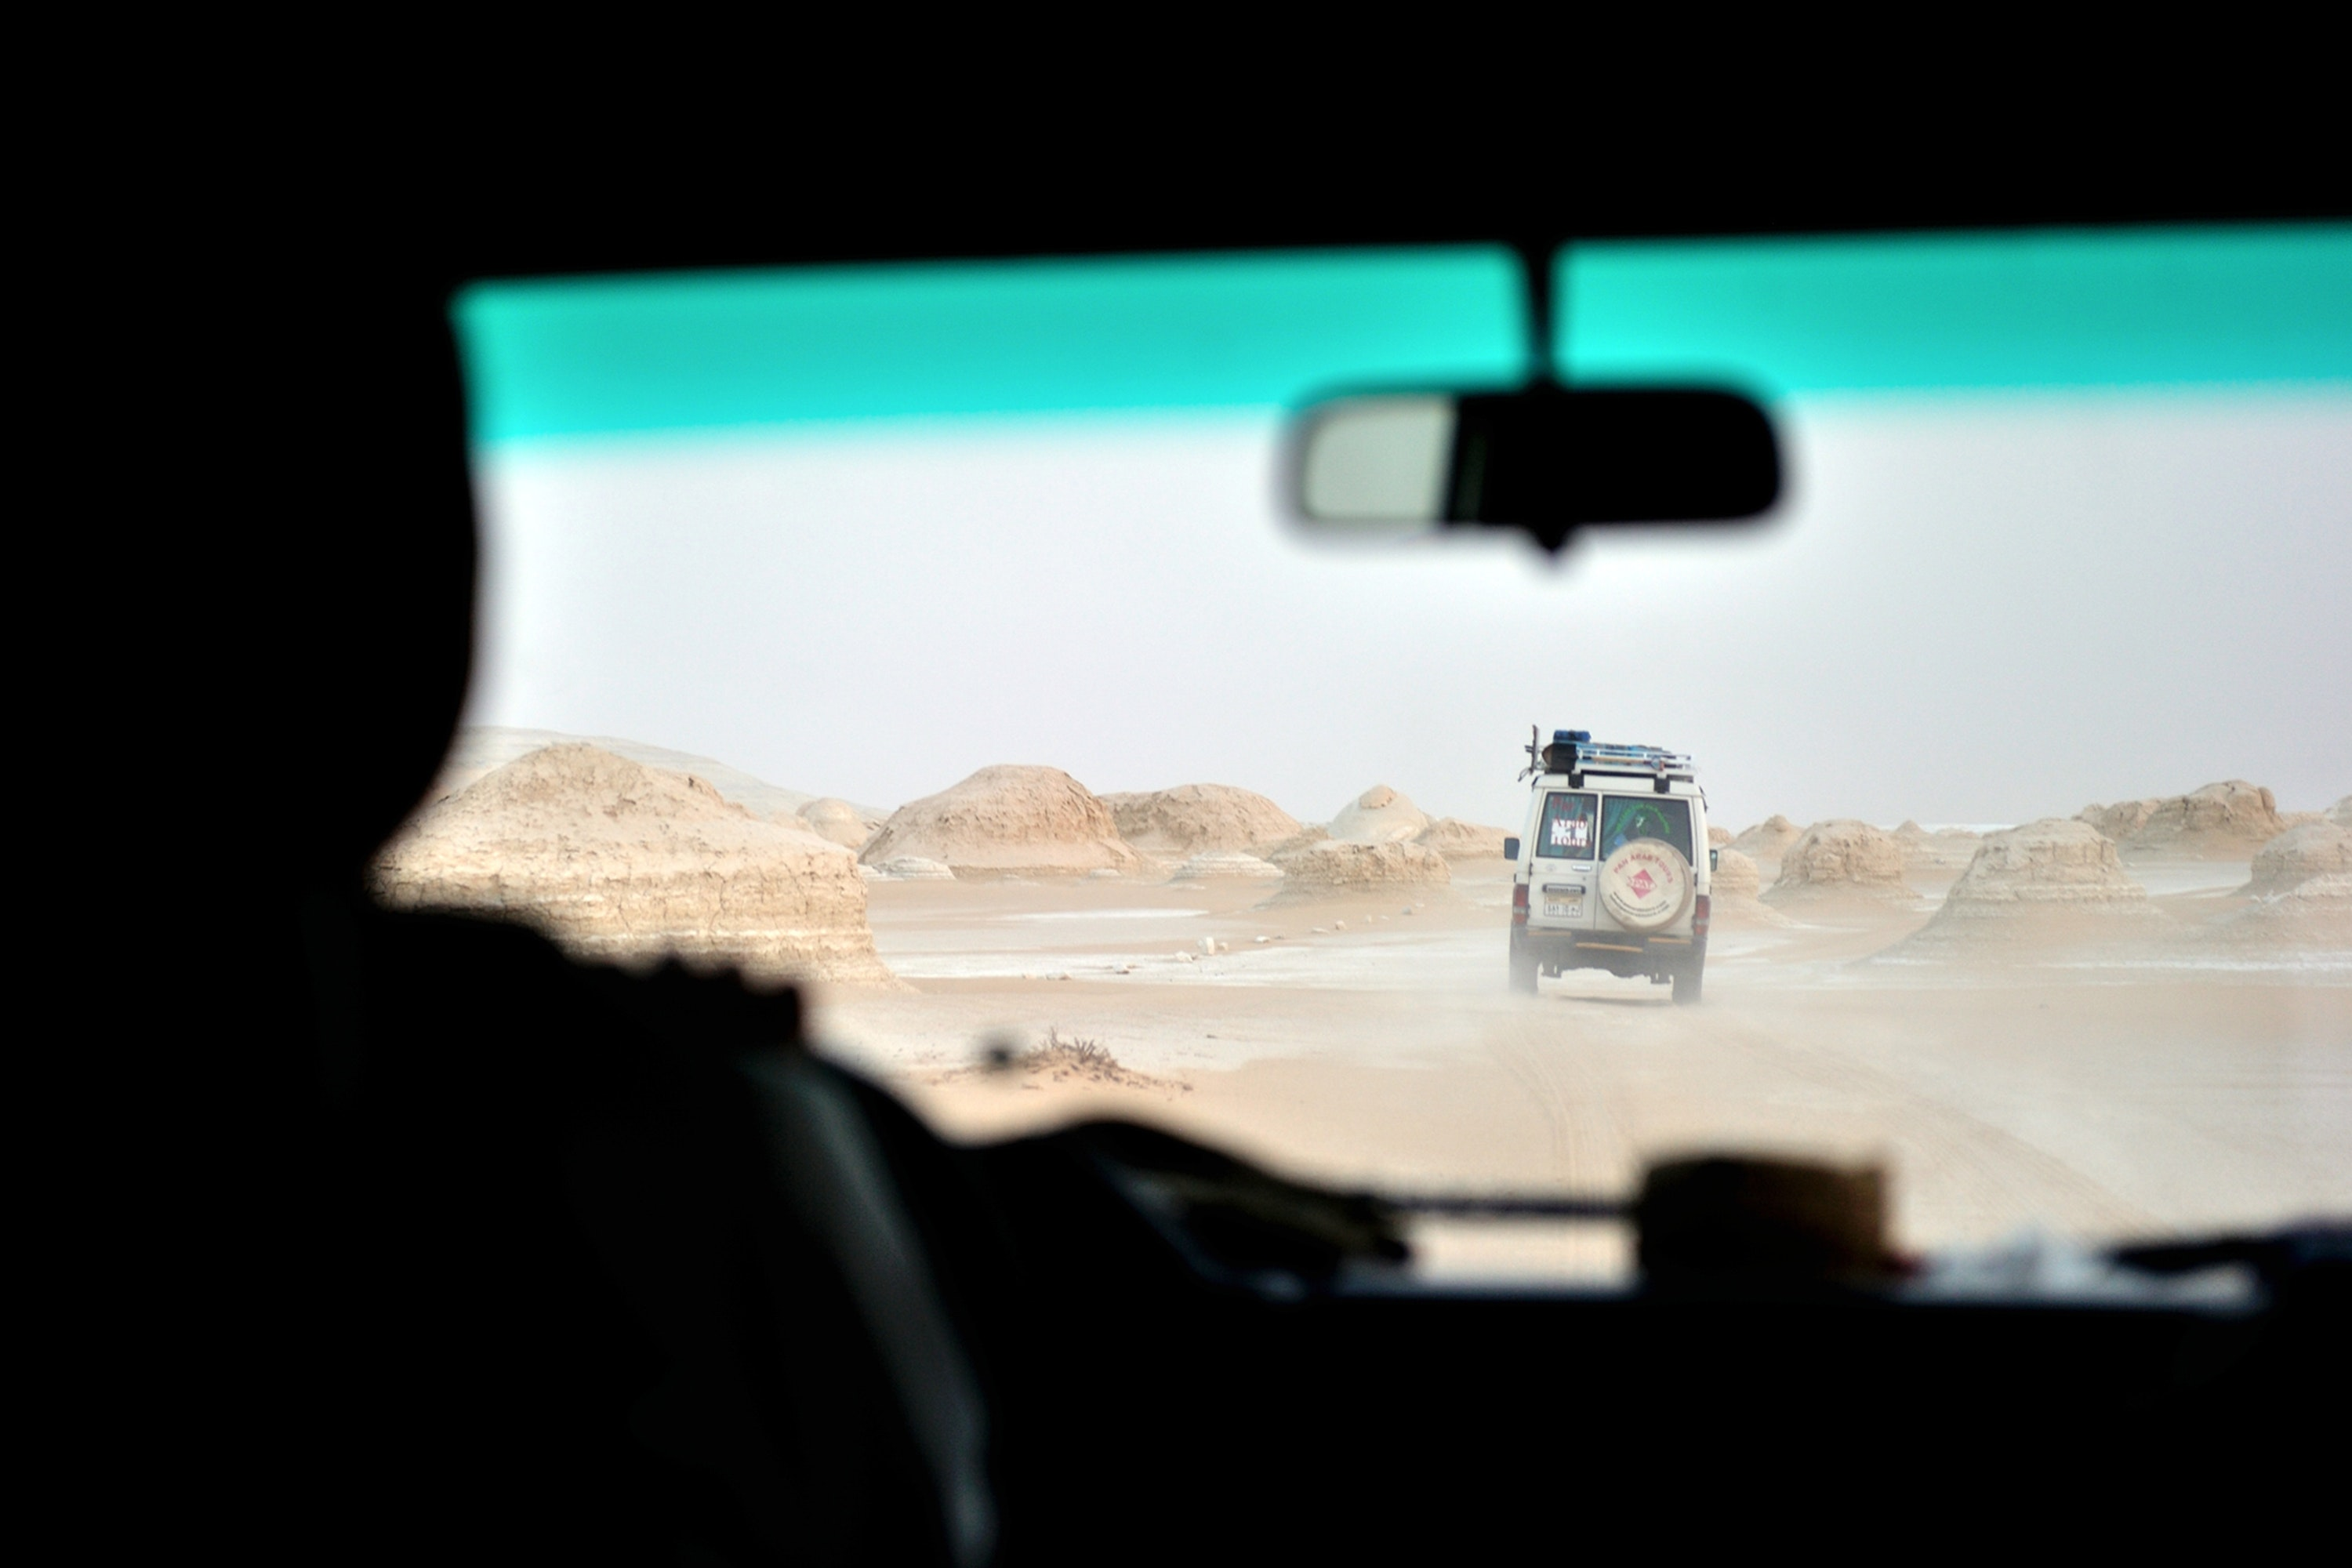 A white vehicle in the desert